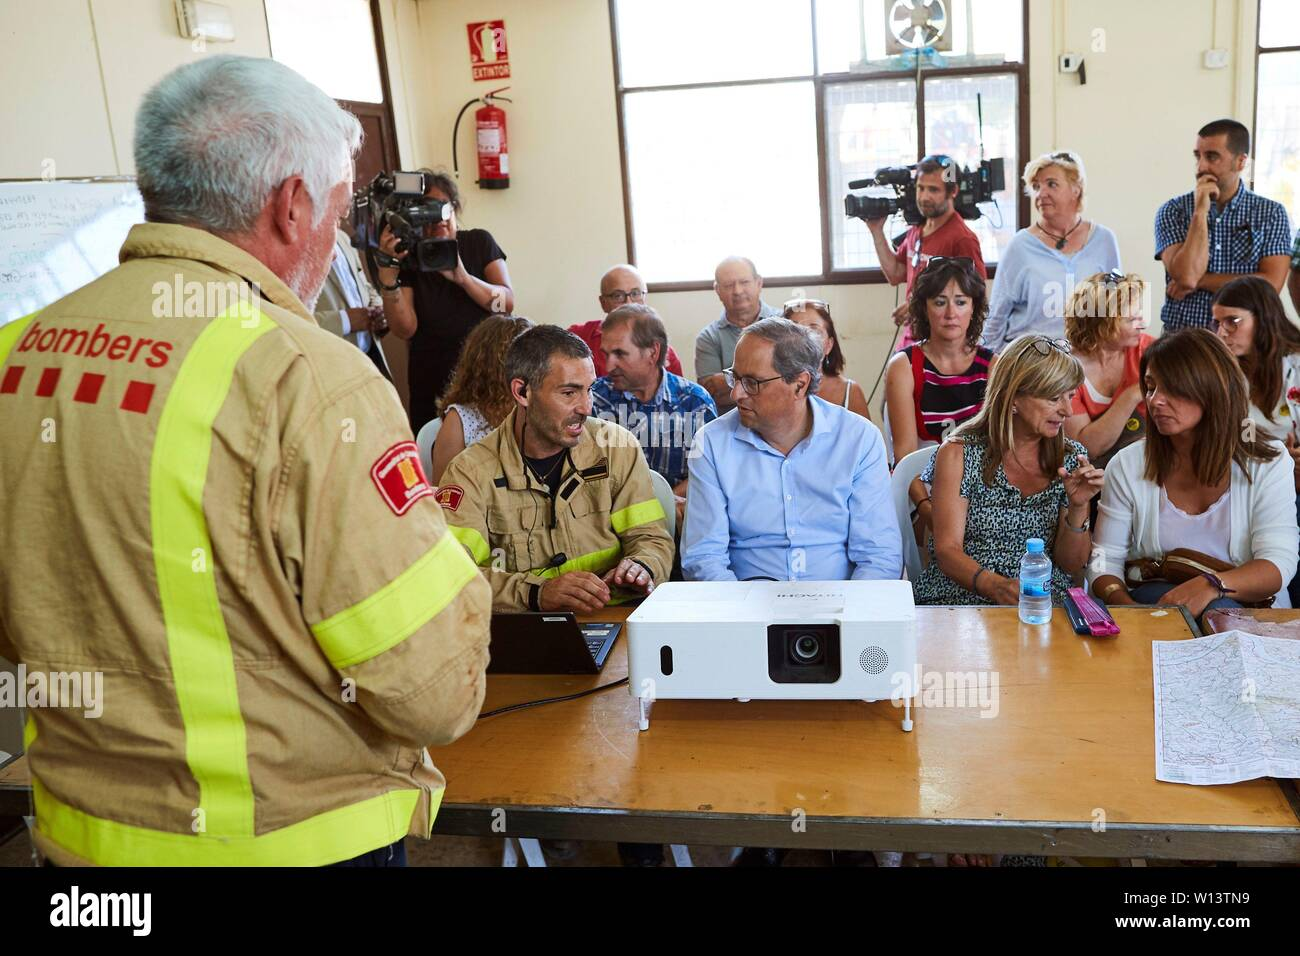 Tarragona, Spain. 30th June, 2019. Catalan regional President, Quim Torra (C), chats with firefighters as he meets mayors of towns in Ribera d'Ebre local administrative division in Vinebre town, Tarragona, Spain, 30 June 2019, to analyze the situation that caused the fire declared 26 June 2019 that burnt more than 6,000 hectares of land. Credit: EFE News Agency/Alamy Live News - Stock Image